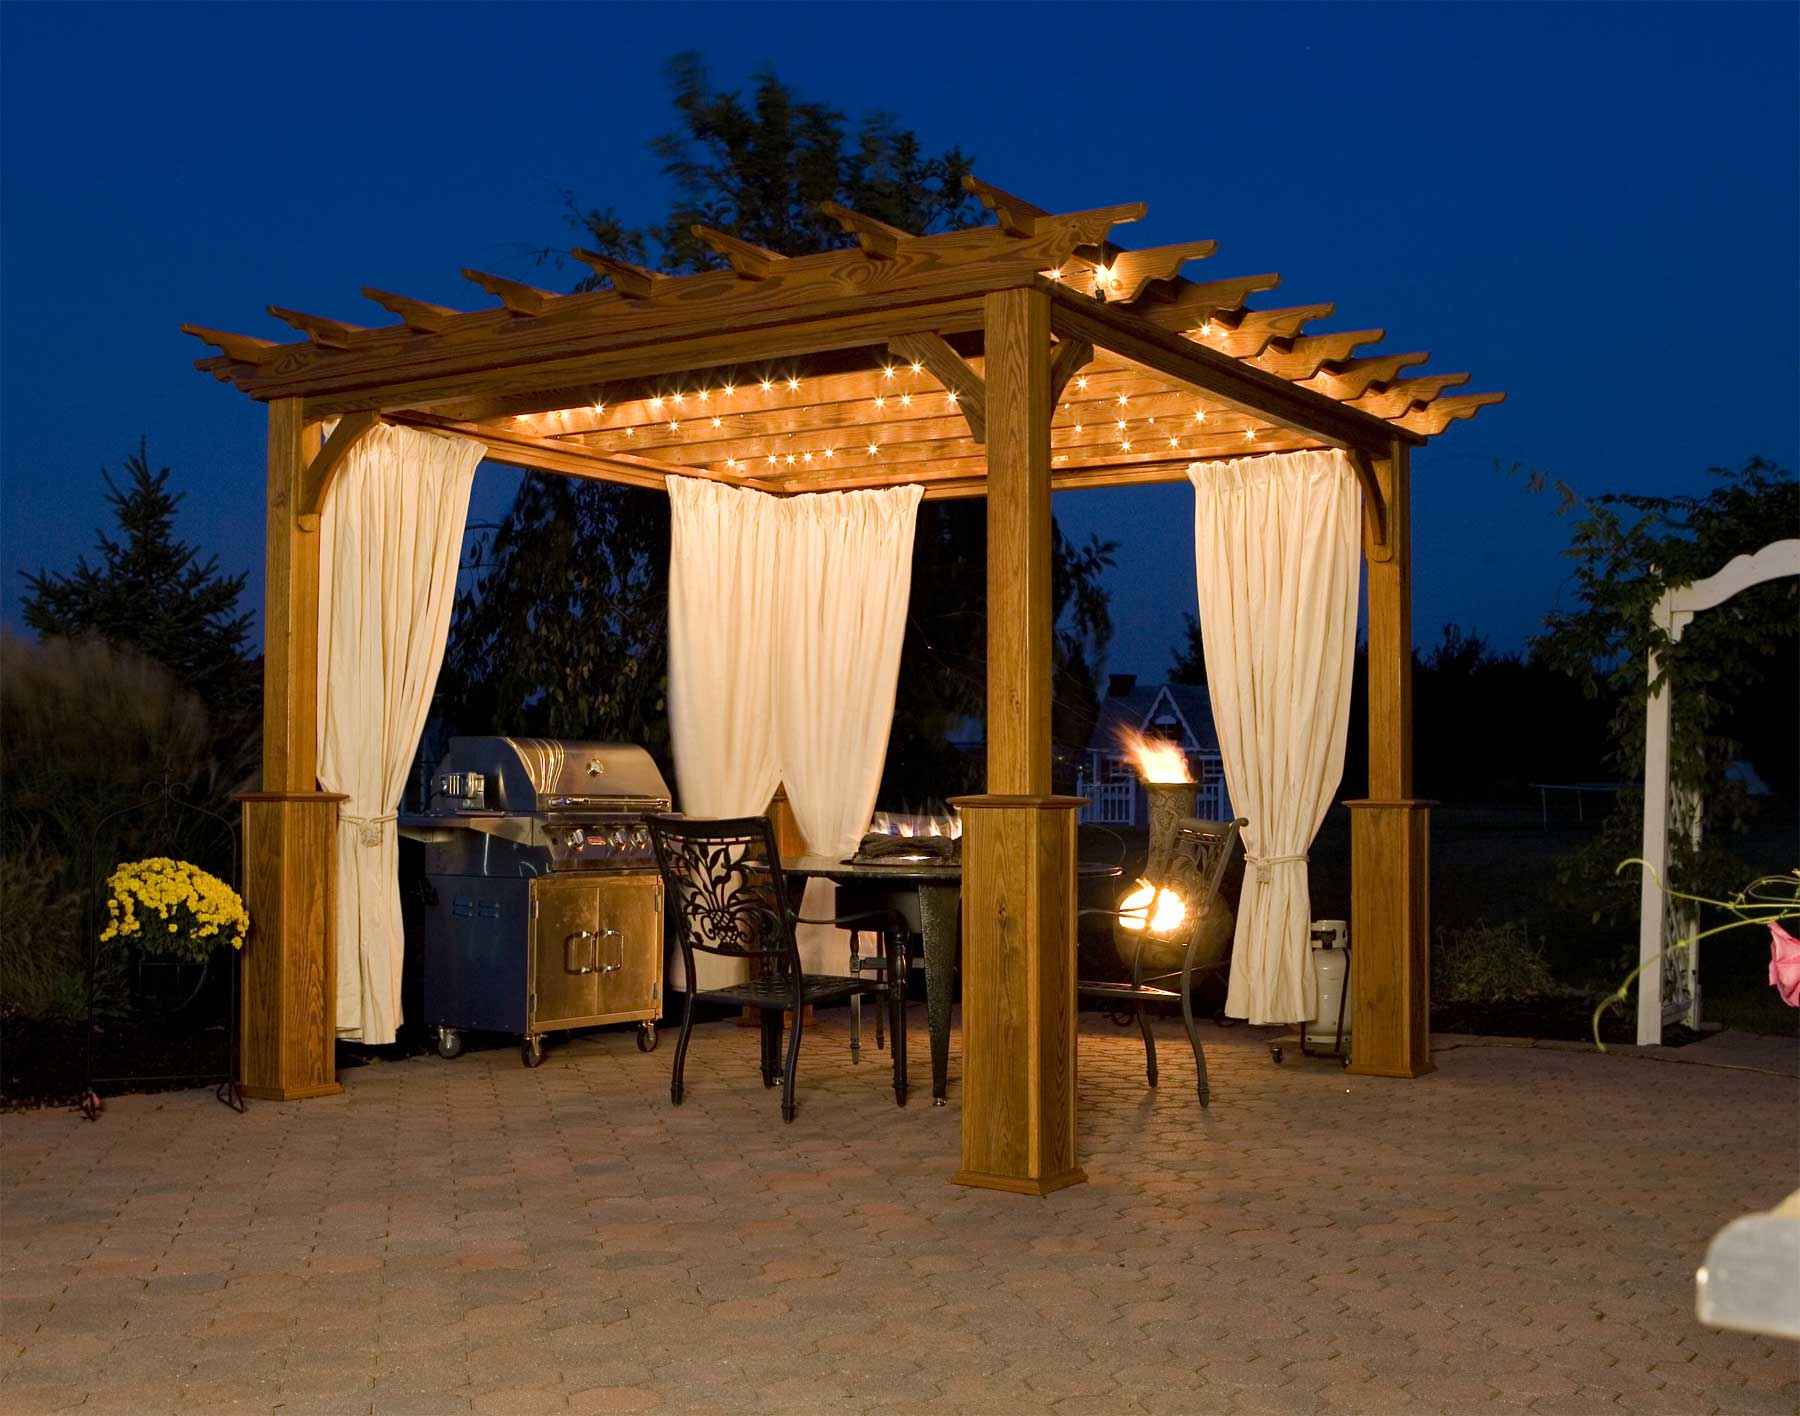 outdoor pergola lights interior decorating accessories. Black Bedroom Furniture Sets. Home Design Ideas